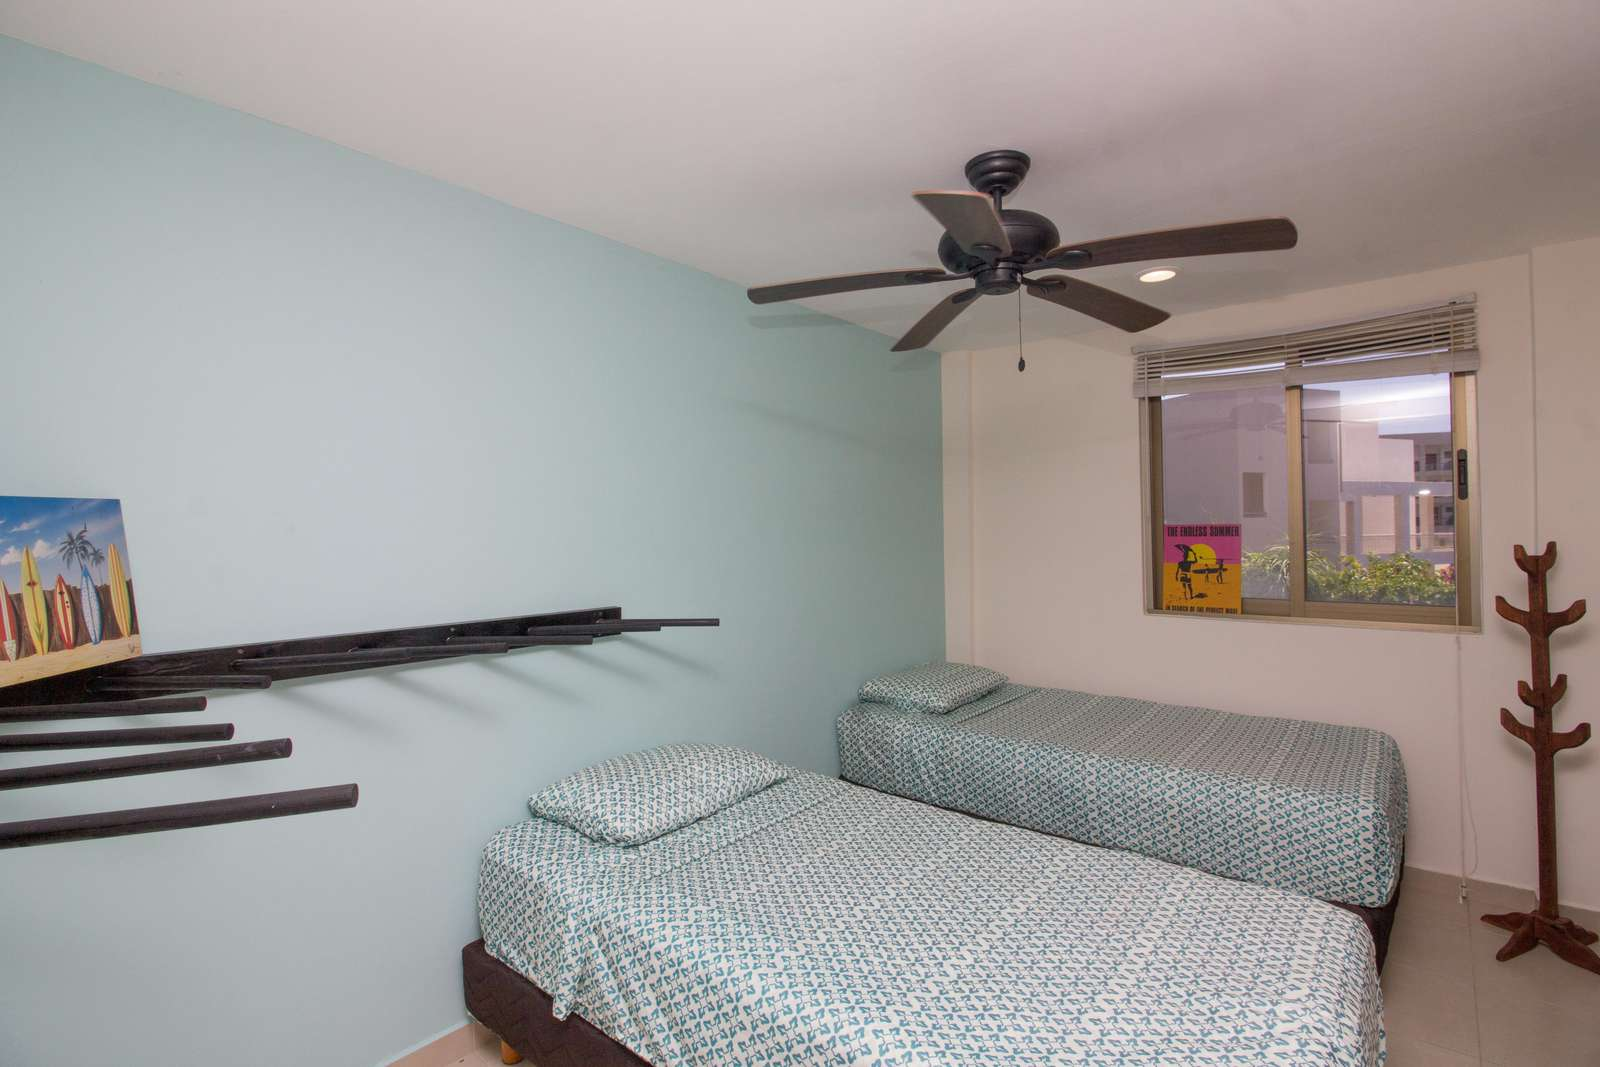 2 twin beds in lower bedroom off parking area with ensuite bath and surfboard rack